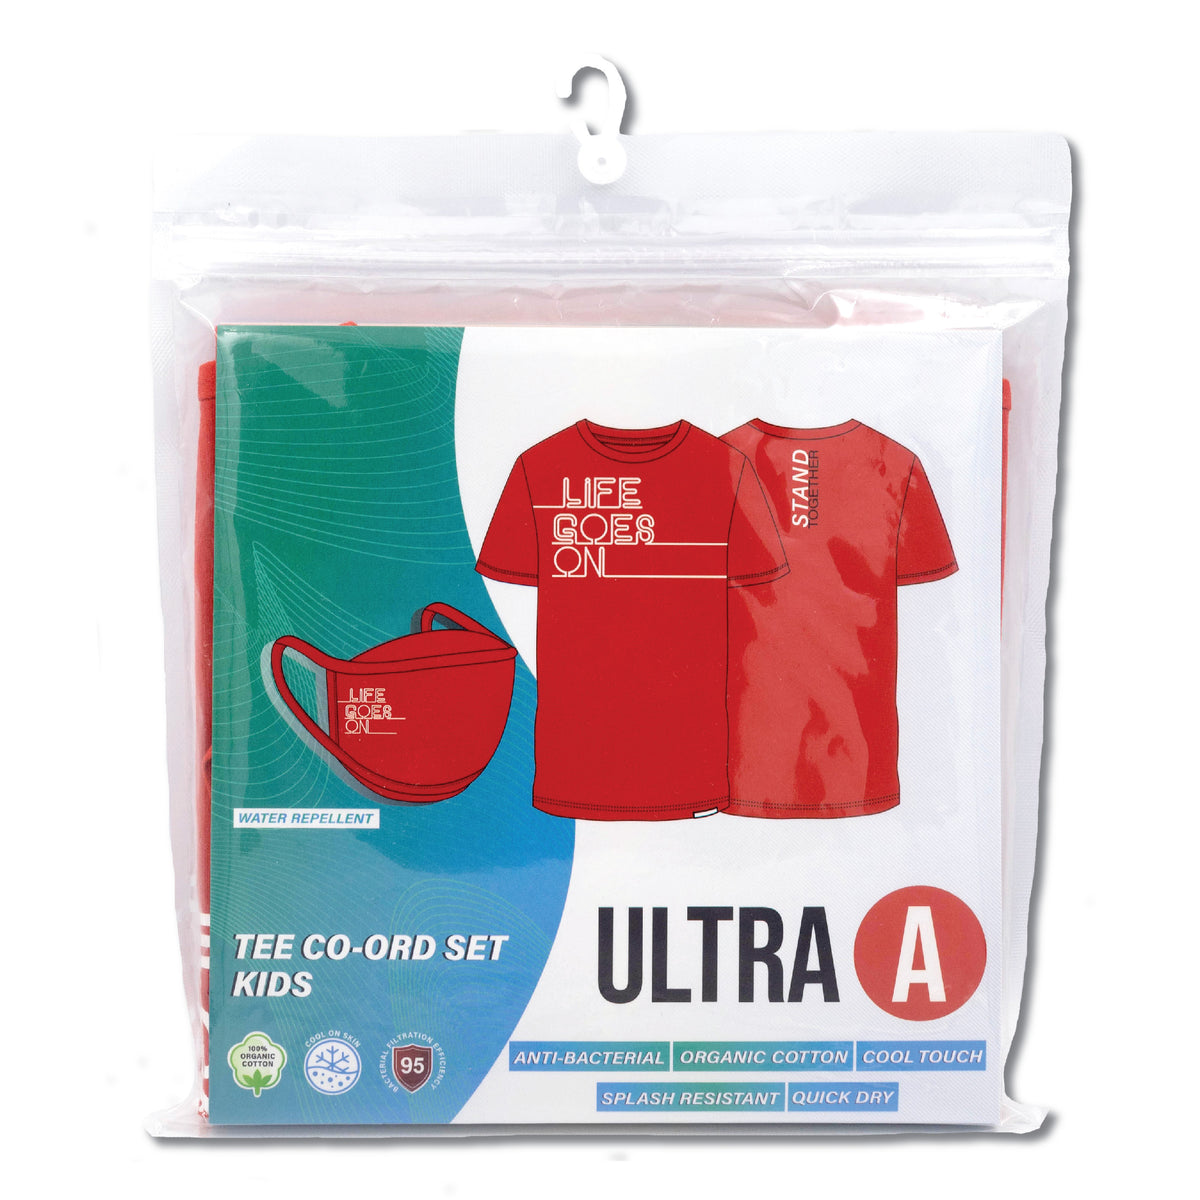 Anti-Bacterial Tee + 3-Ply Anti-Bacterial Mask Co-Ord Set (Life Goes On - Kids)